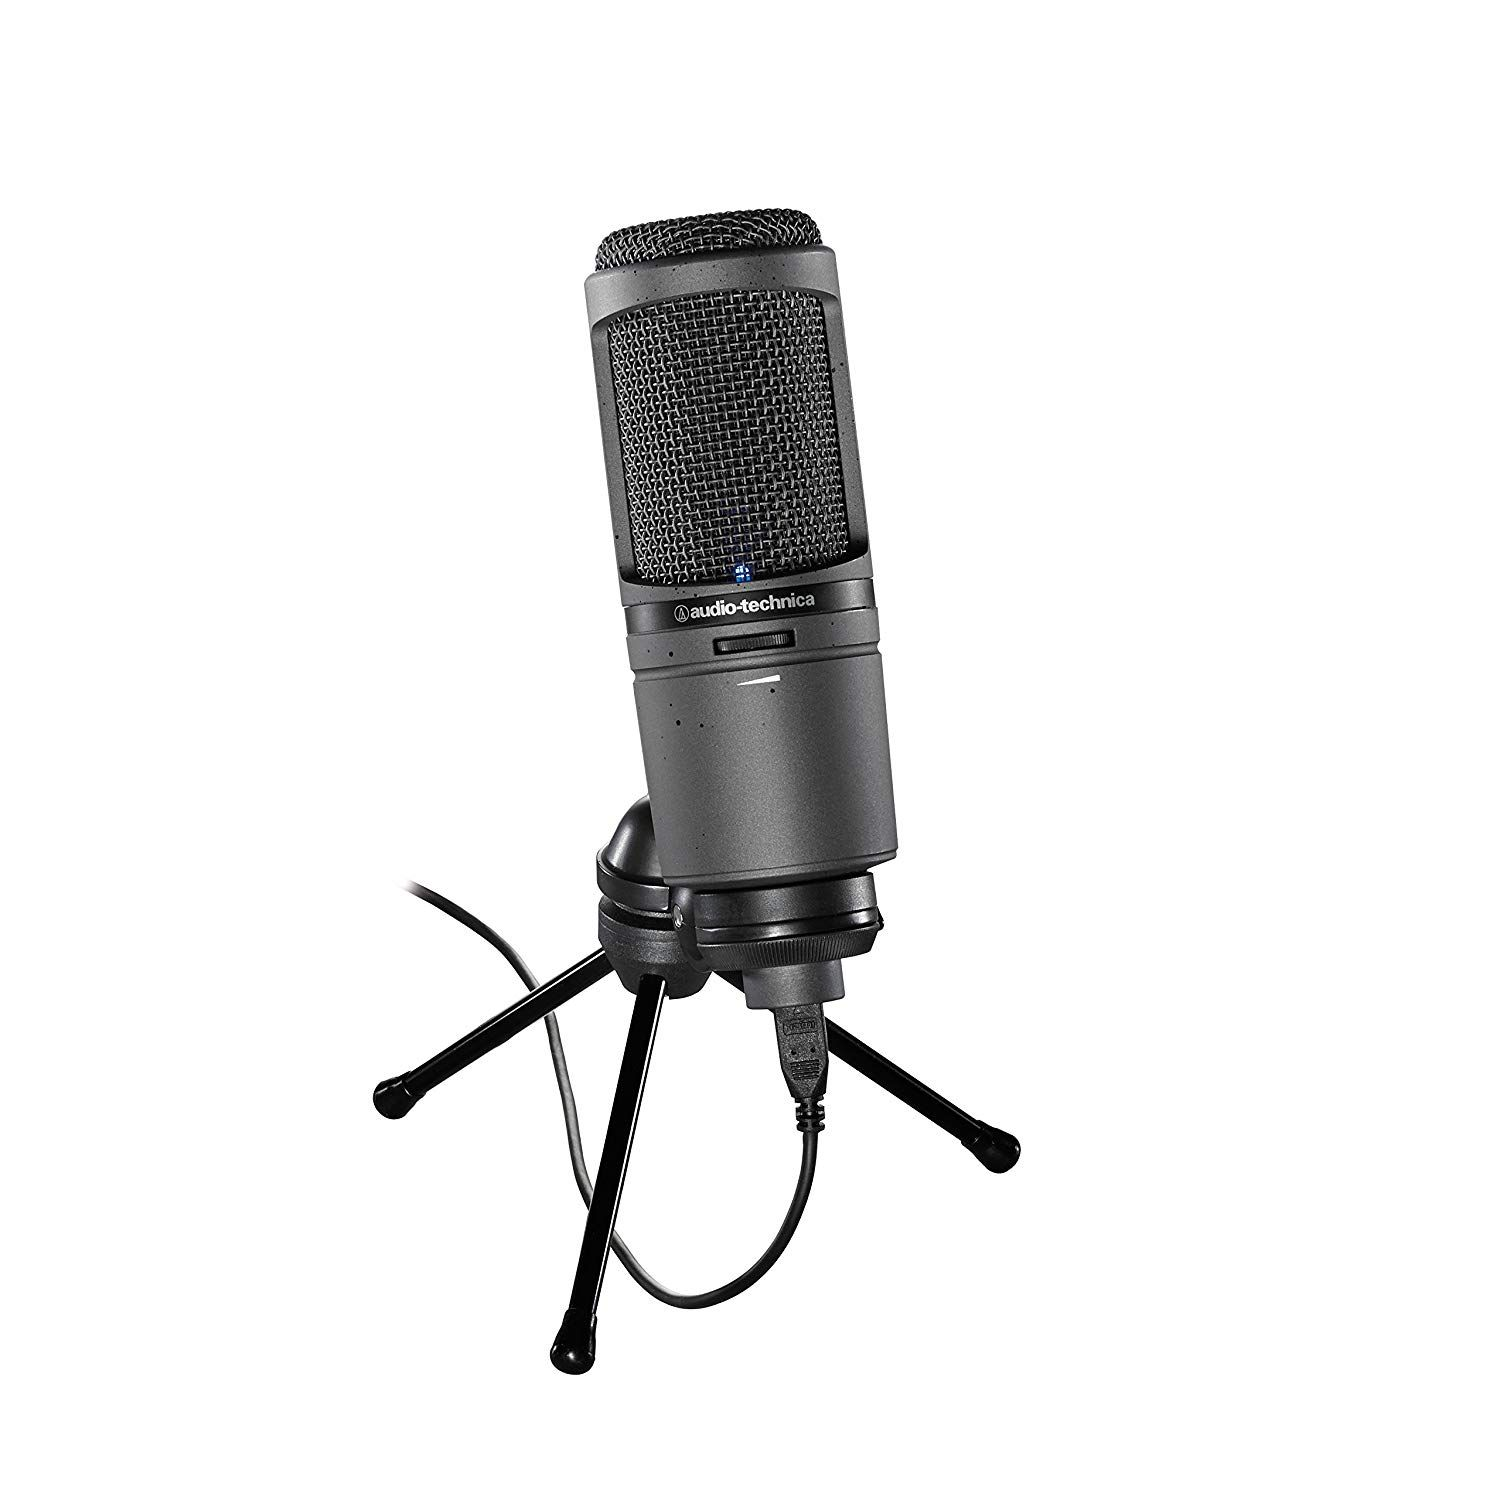 Best Microphone For Home Recording Audio Technica At2020usbi Cardioid Condenser Usb Microphone Just In 195 99 No Usb Microphone Microphone Audio Technica